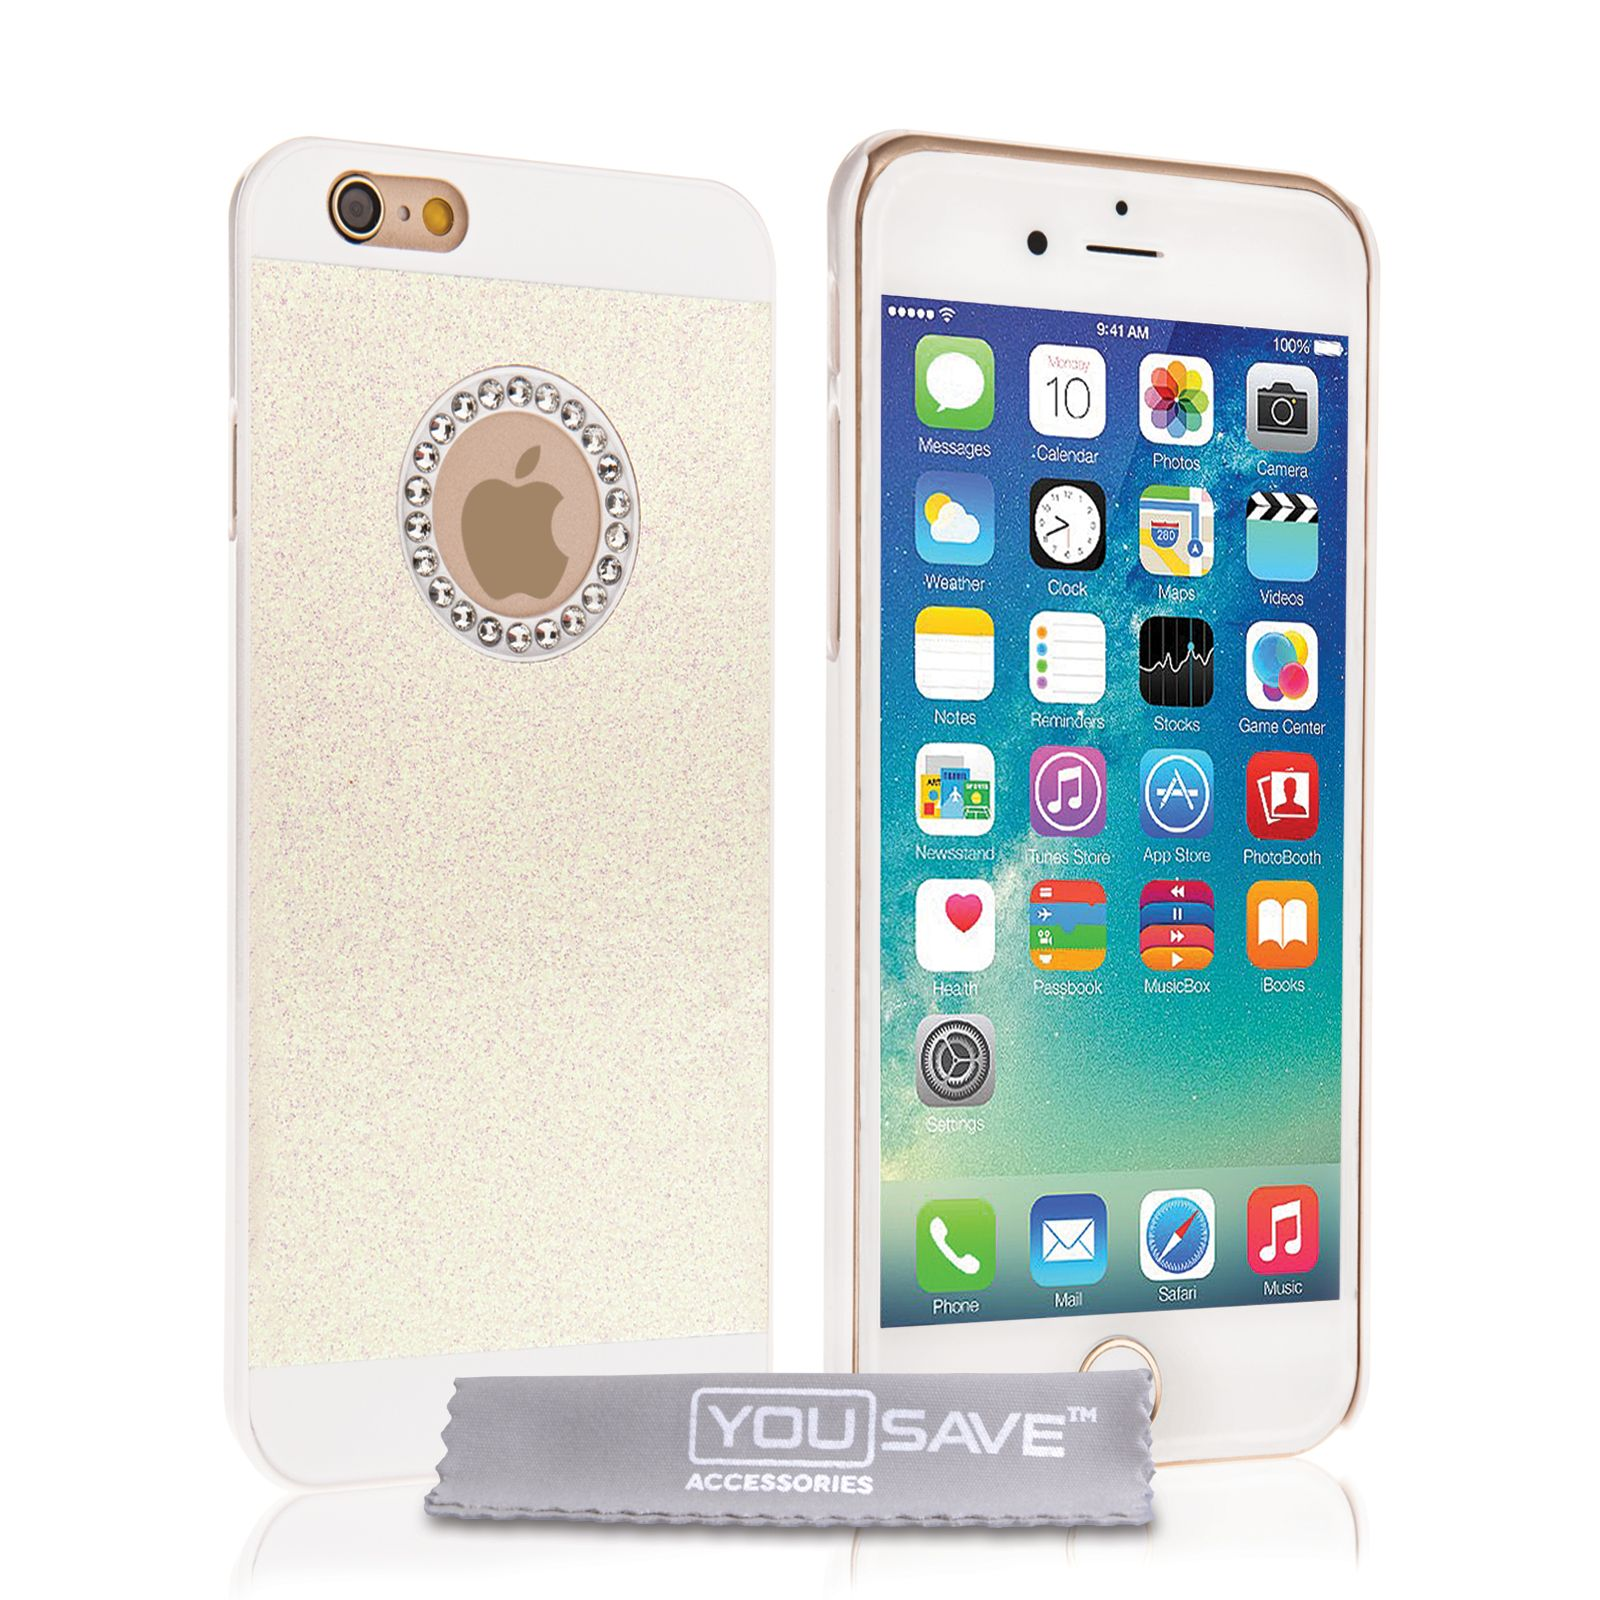 Yousave Accessories iPhone 6 and 6s Flash Diamond Case - White | Mobile Madhouse